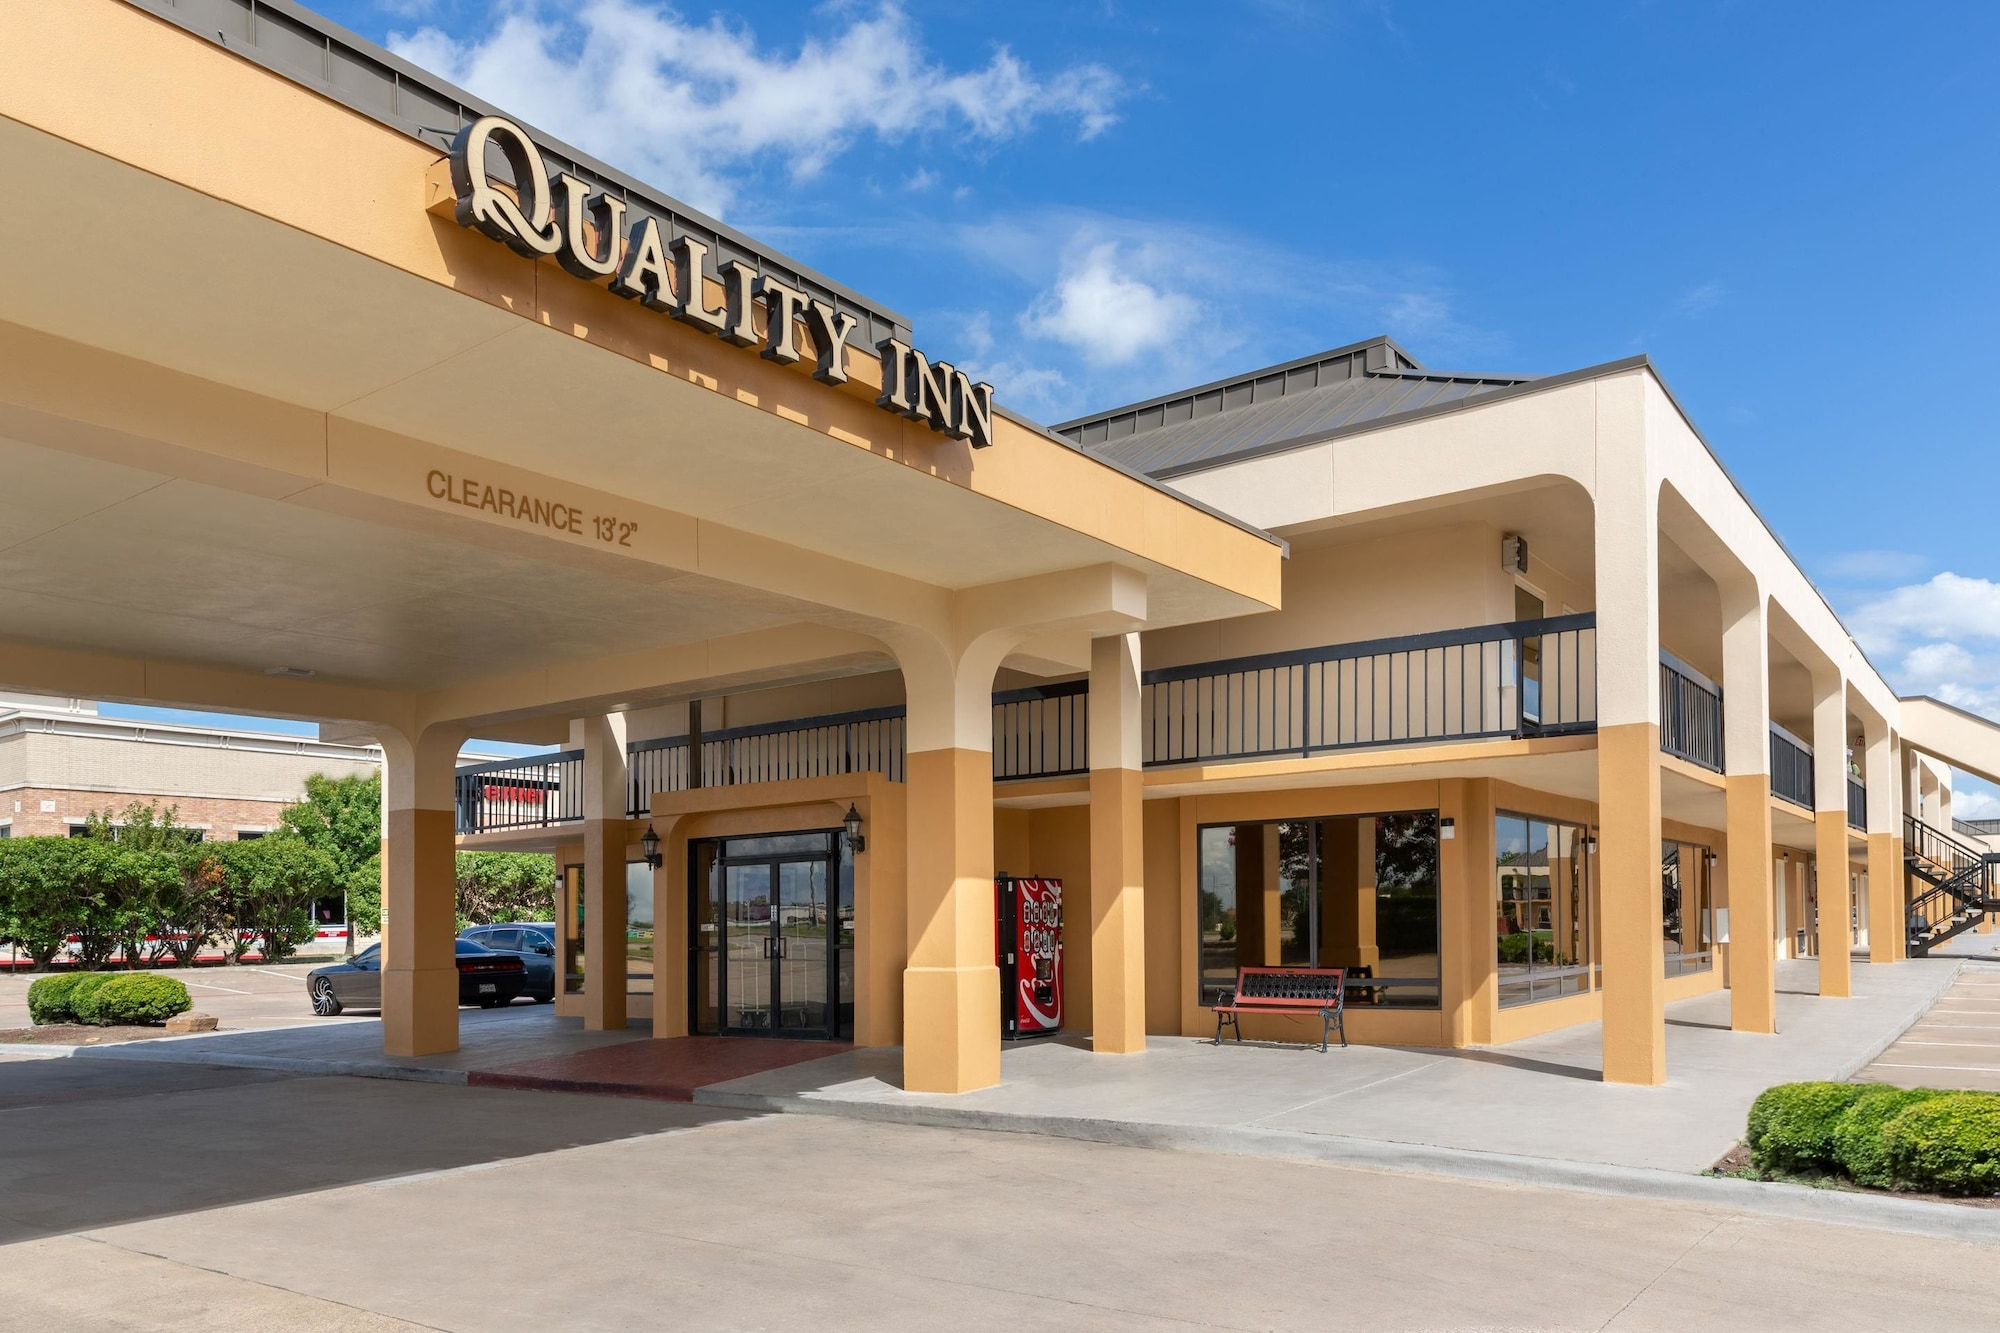 Quality Inn at Arlington Highlands, Tarrant